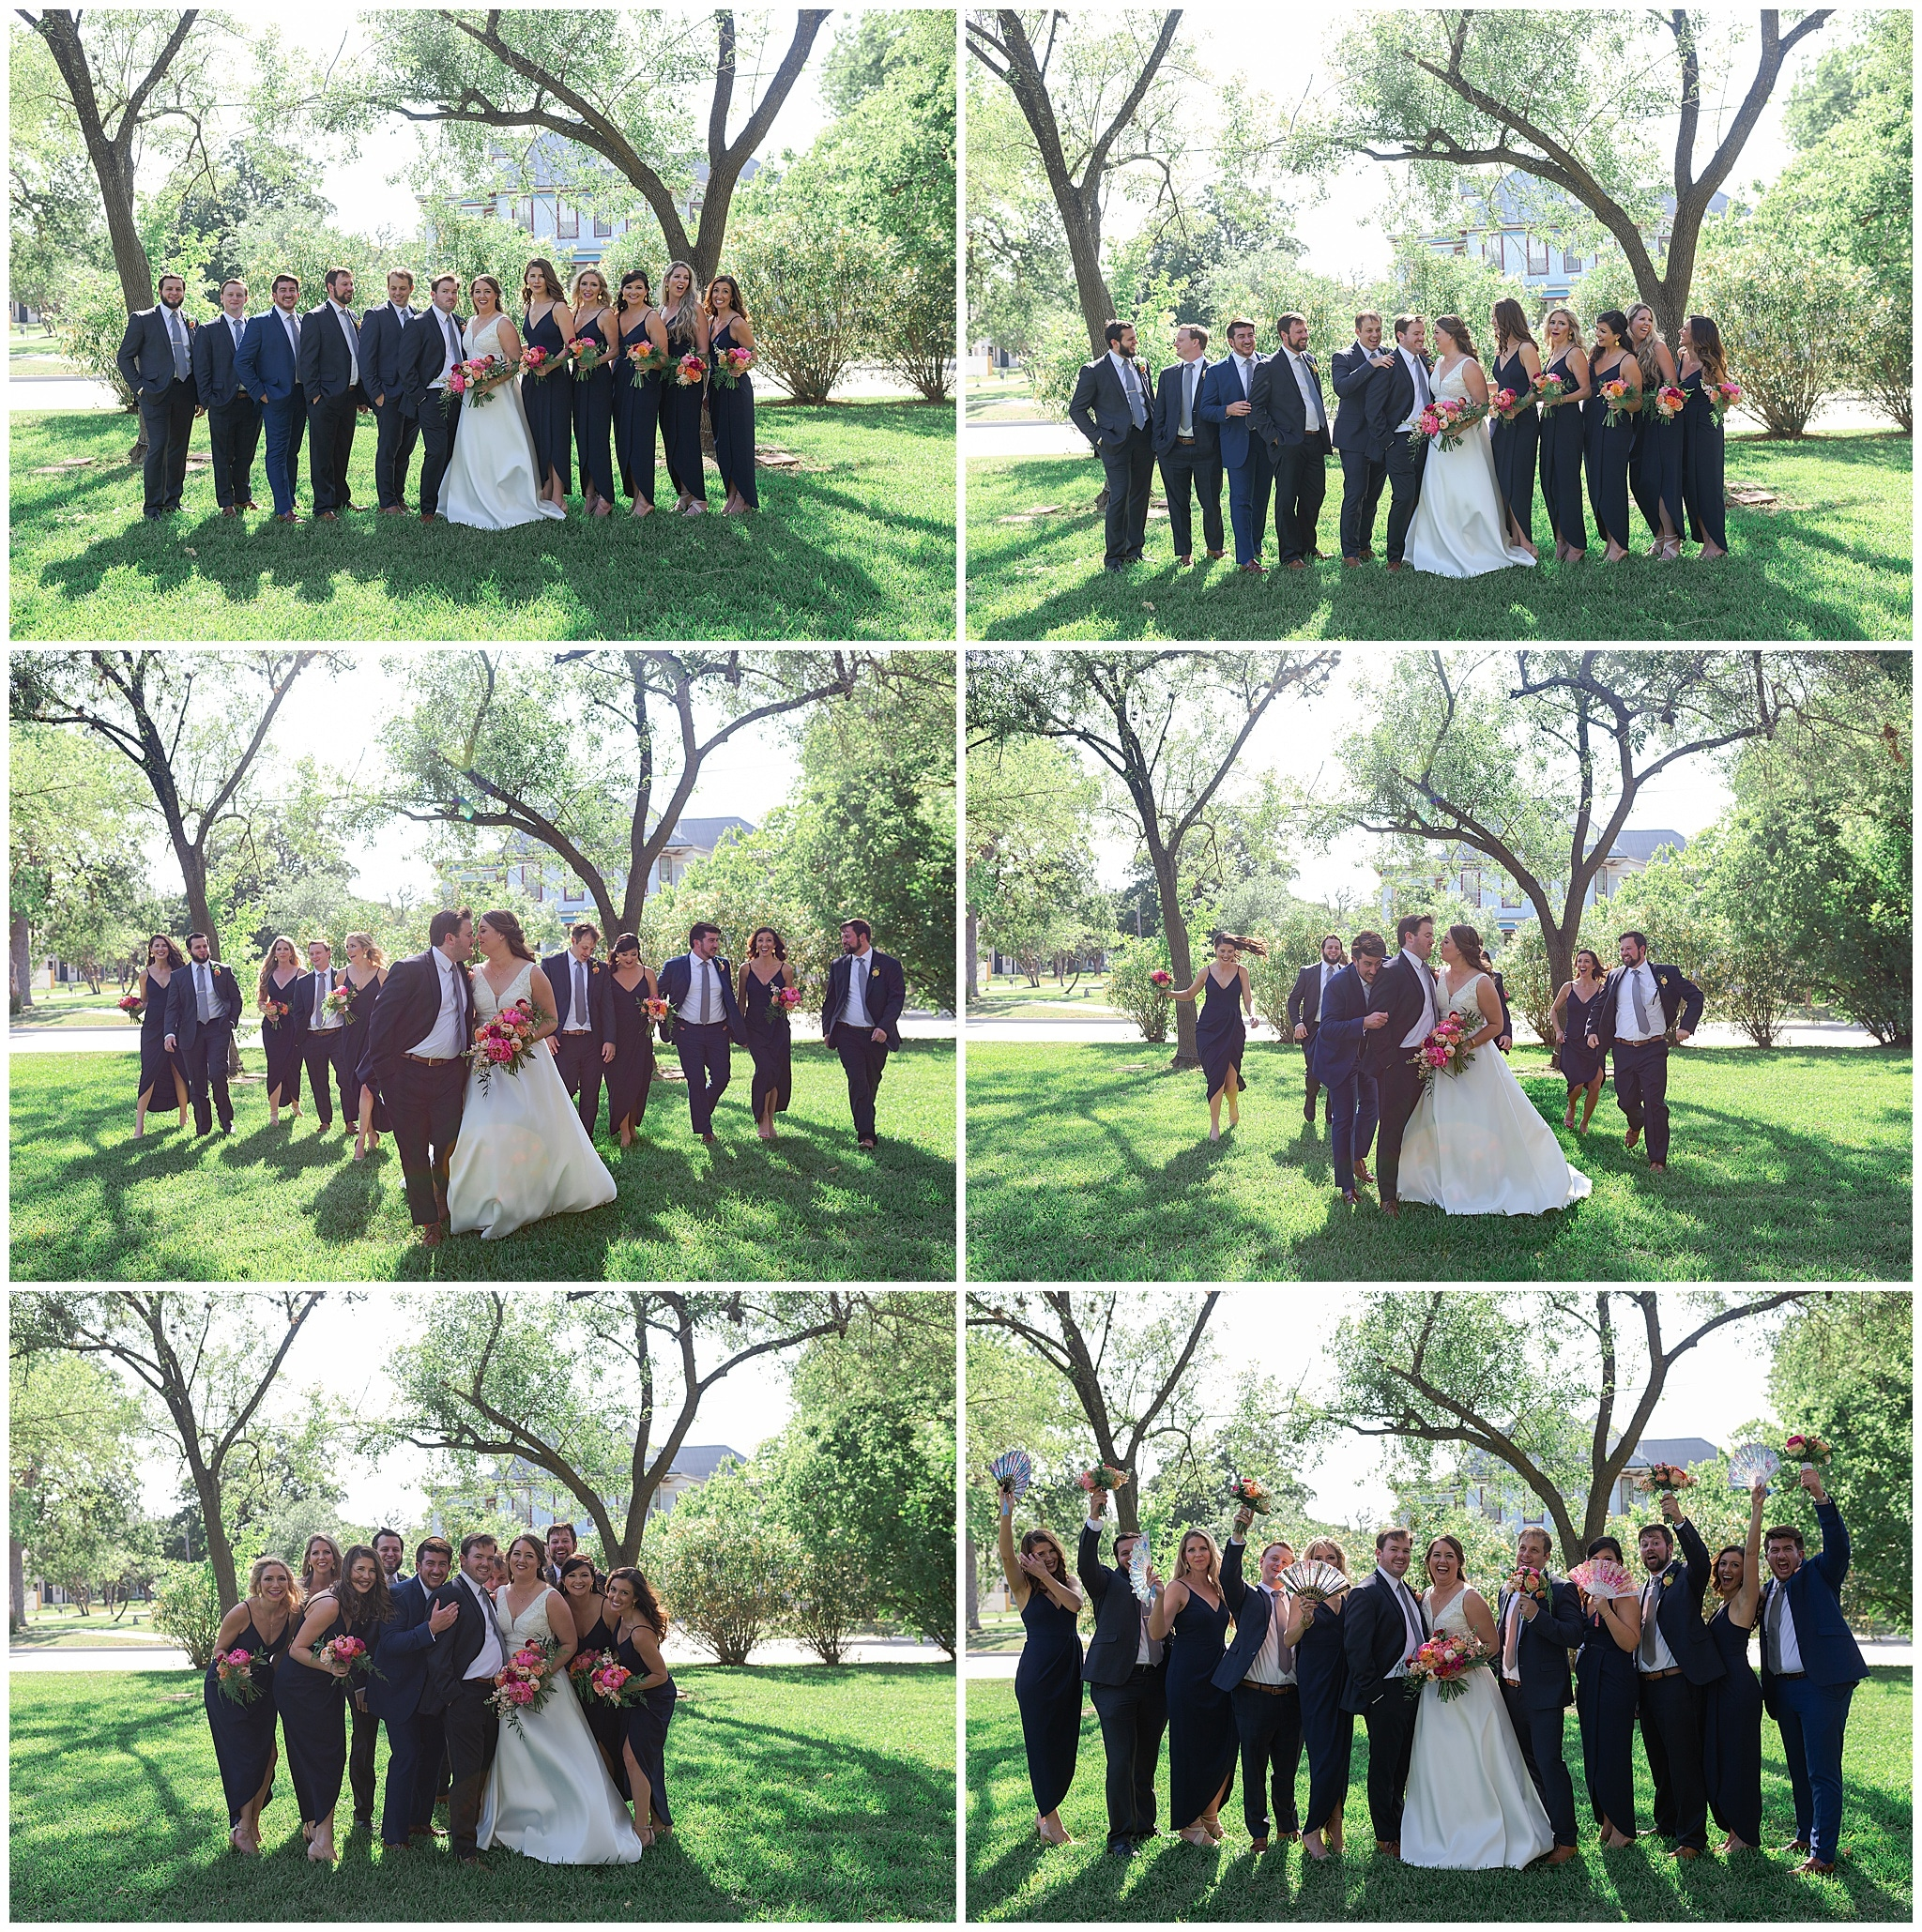 wedding party portraits at Astin Mansion in Bryan Texas by Swish and Click Photography